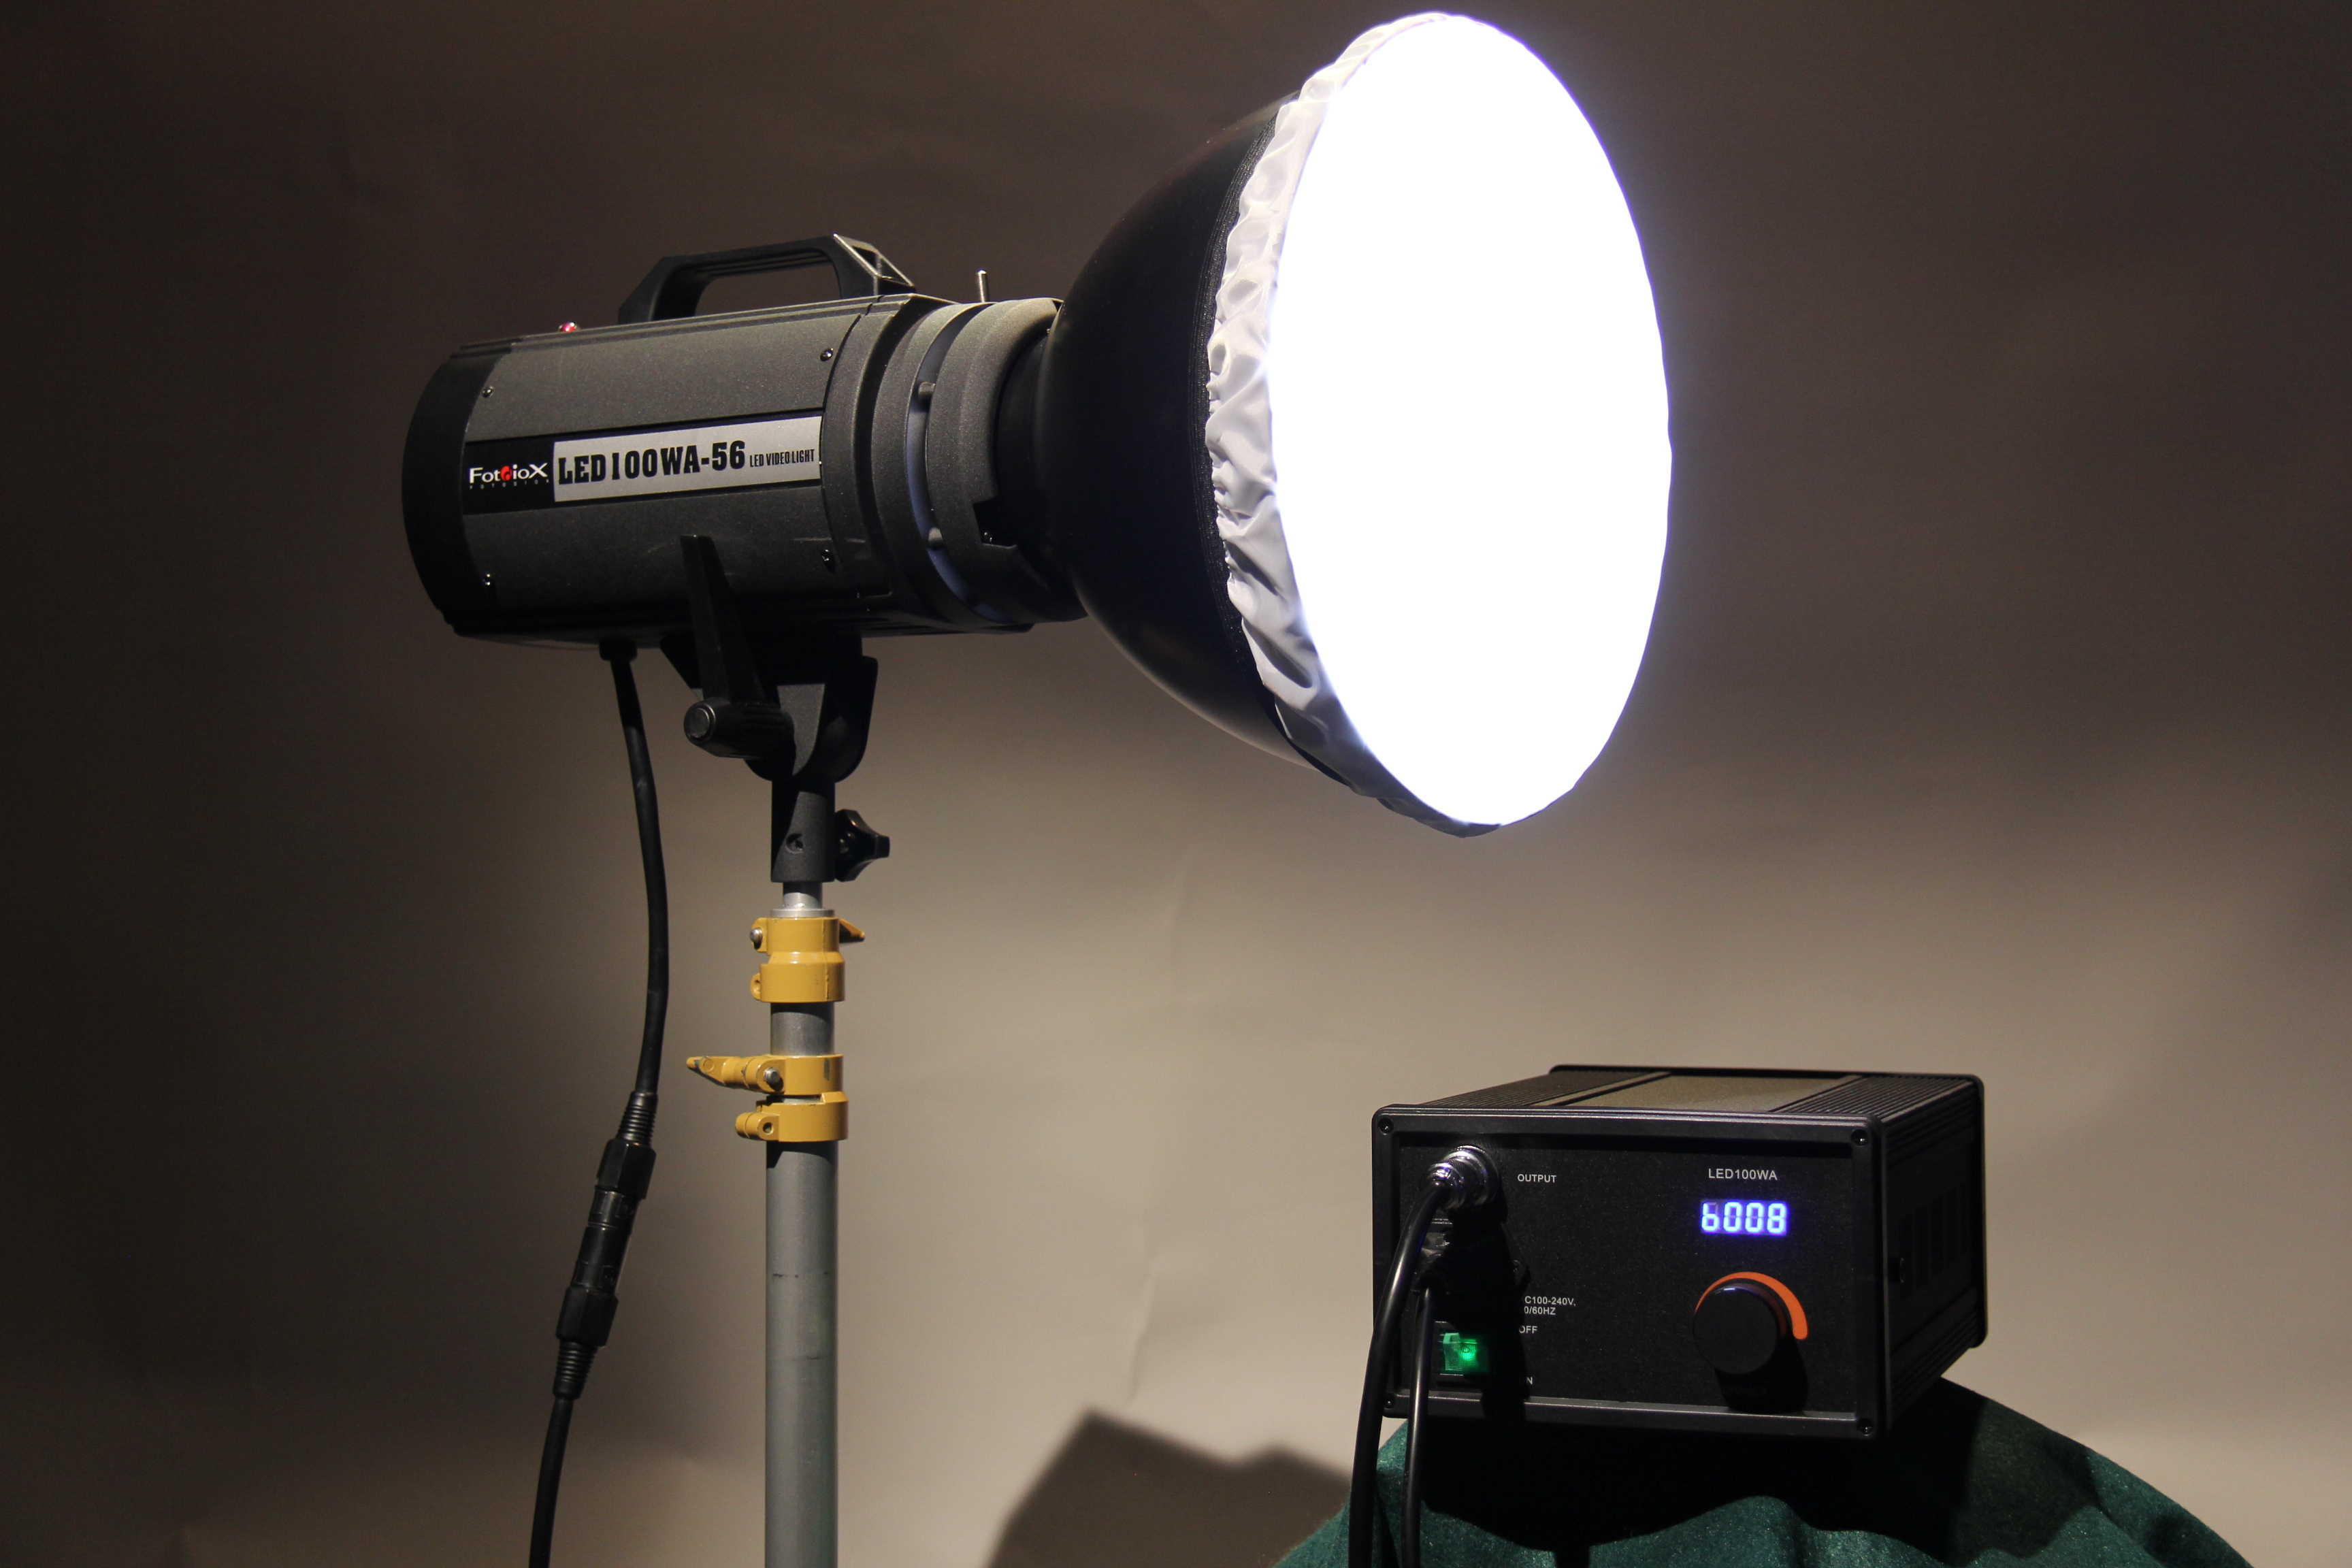 Review: Fotodiox LED100WA-56 Video Light 2